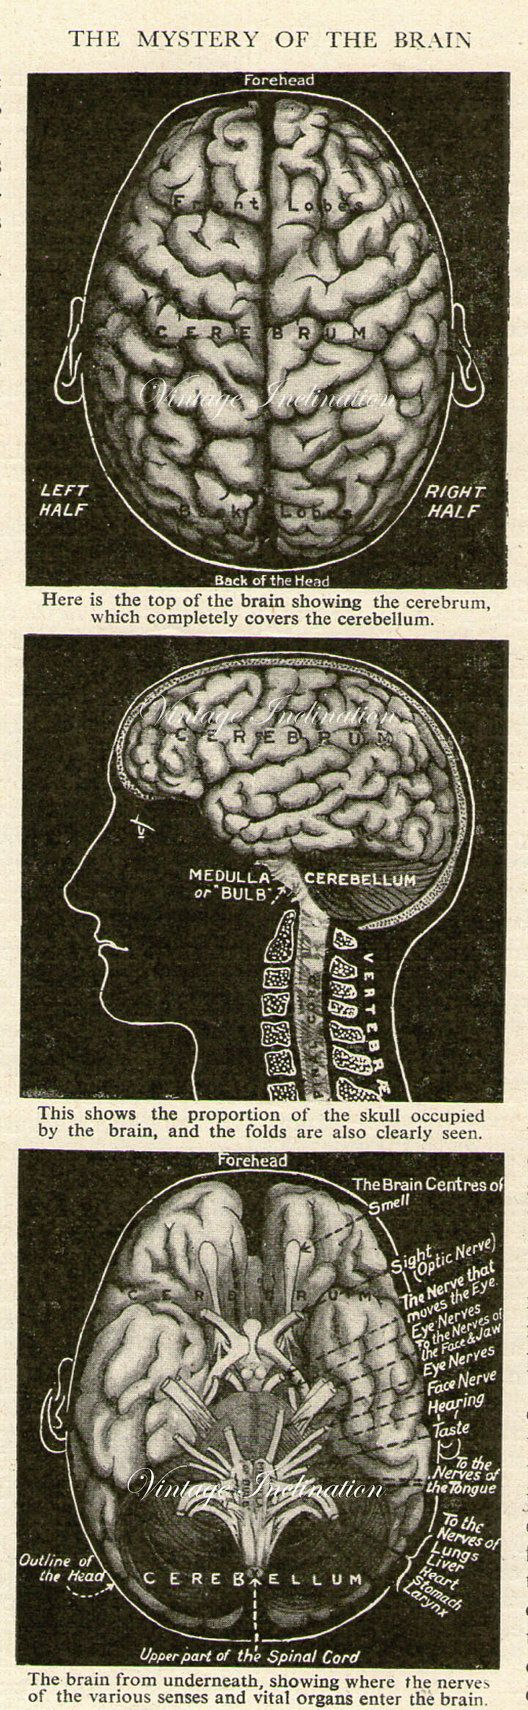 Antique Medical illustration, The Mystery of the Brain, 1930s print, image, anatomy anatomical nerves art